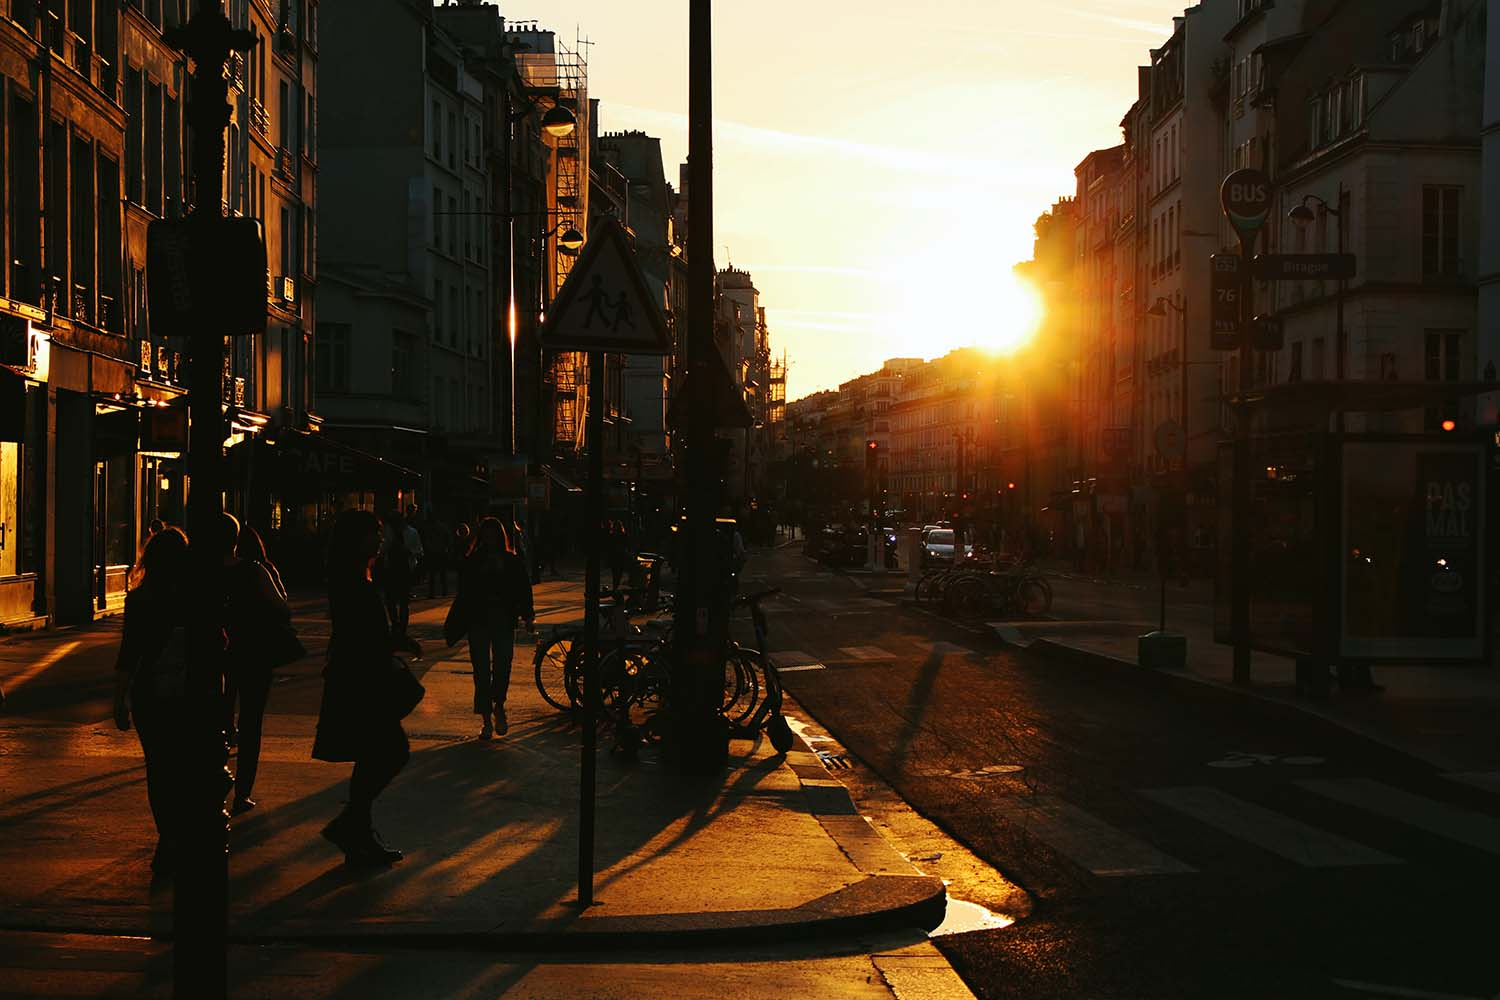 How to Make the Most of a Short Paris City Break